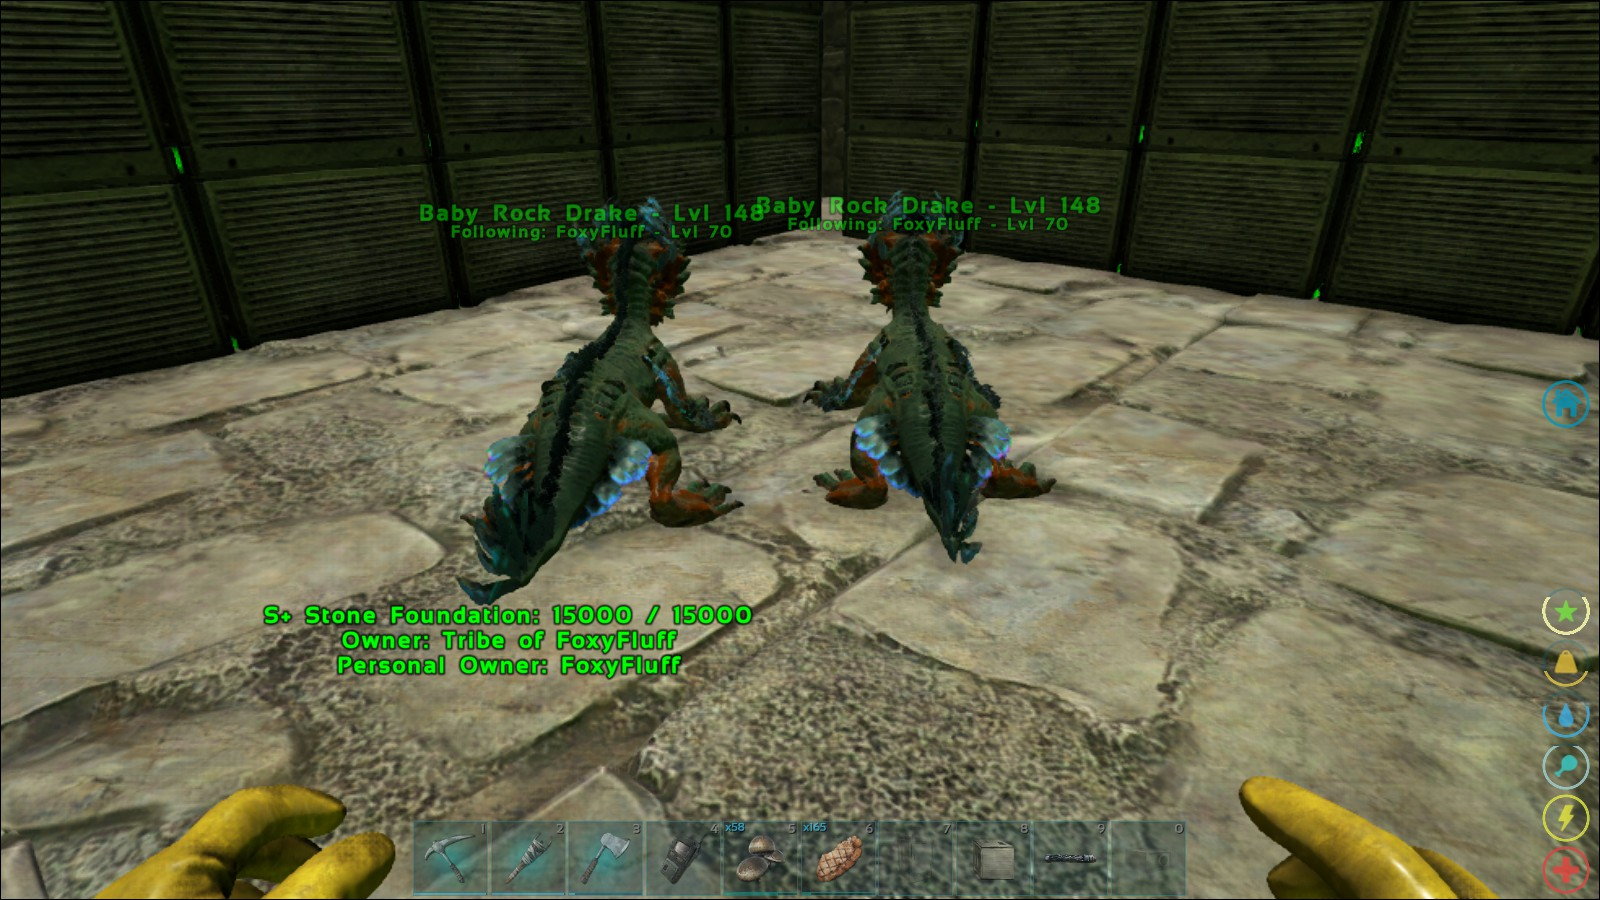 2 Rock Drakes from 1 egg, Jackpot? - General - ARK - Official